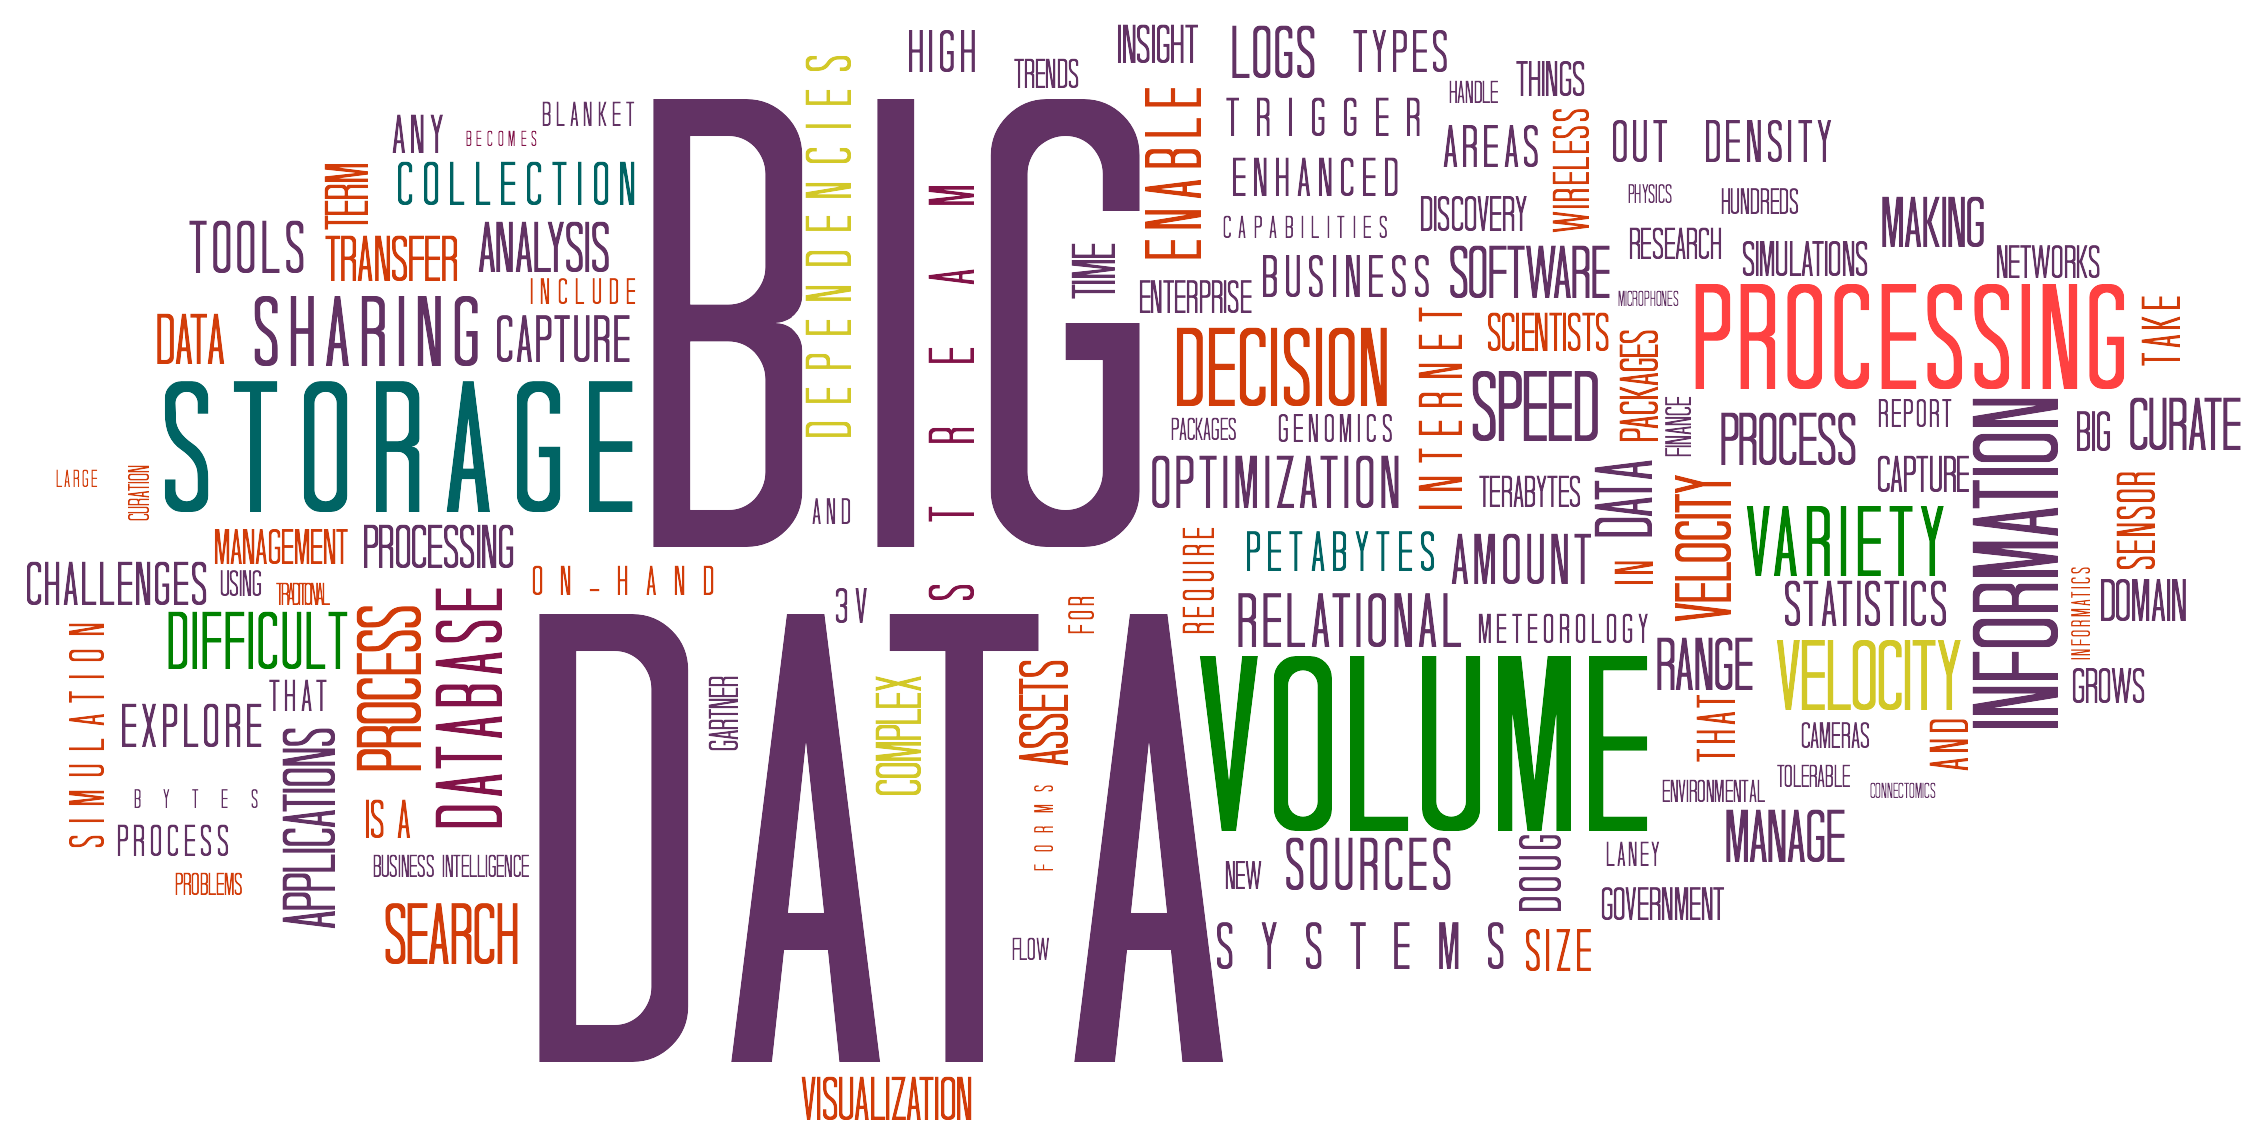 Big data image explaining with texts